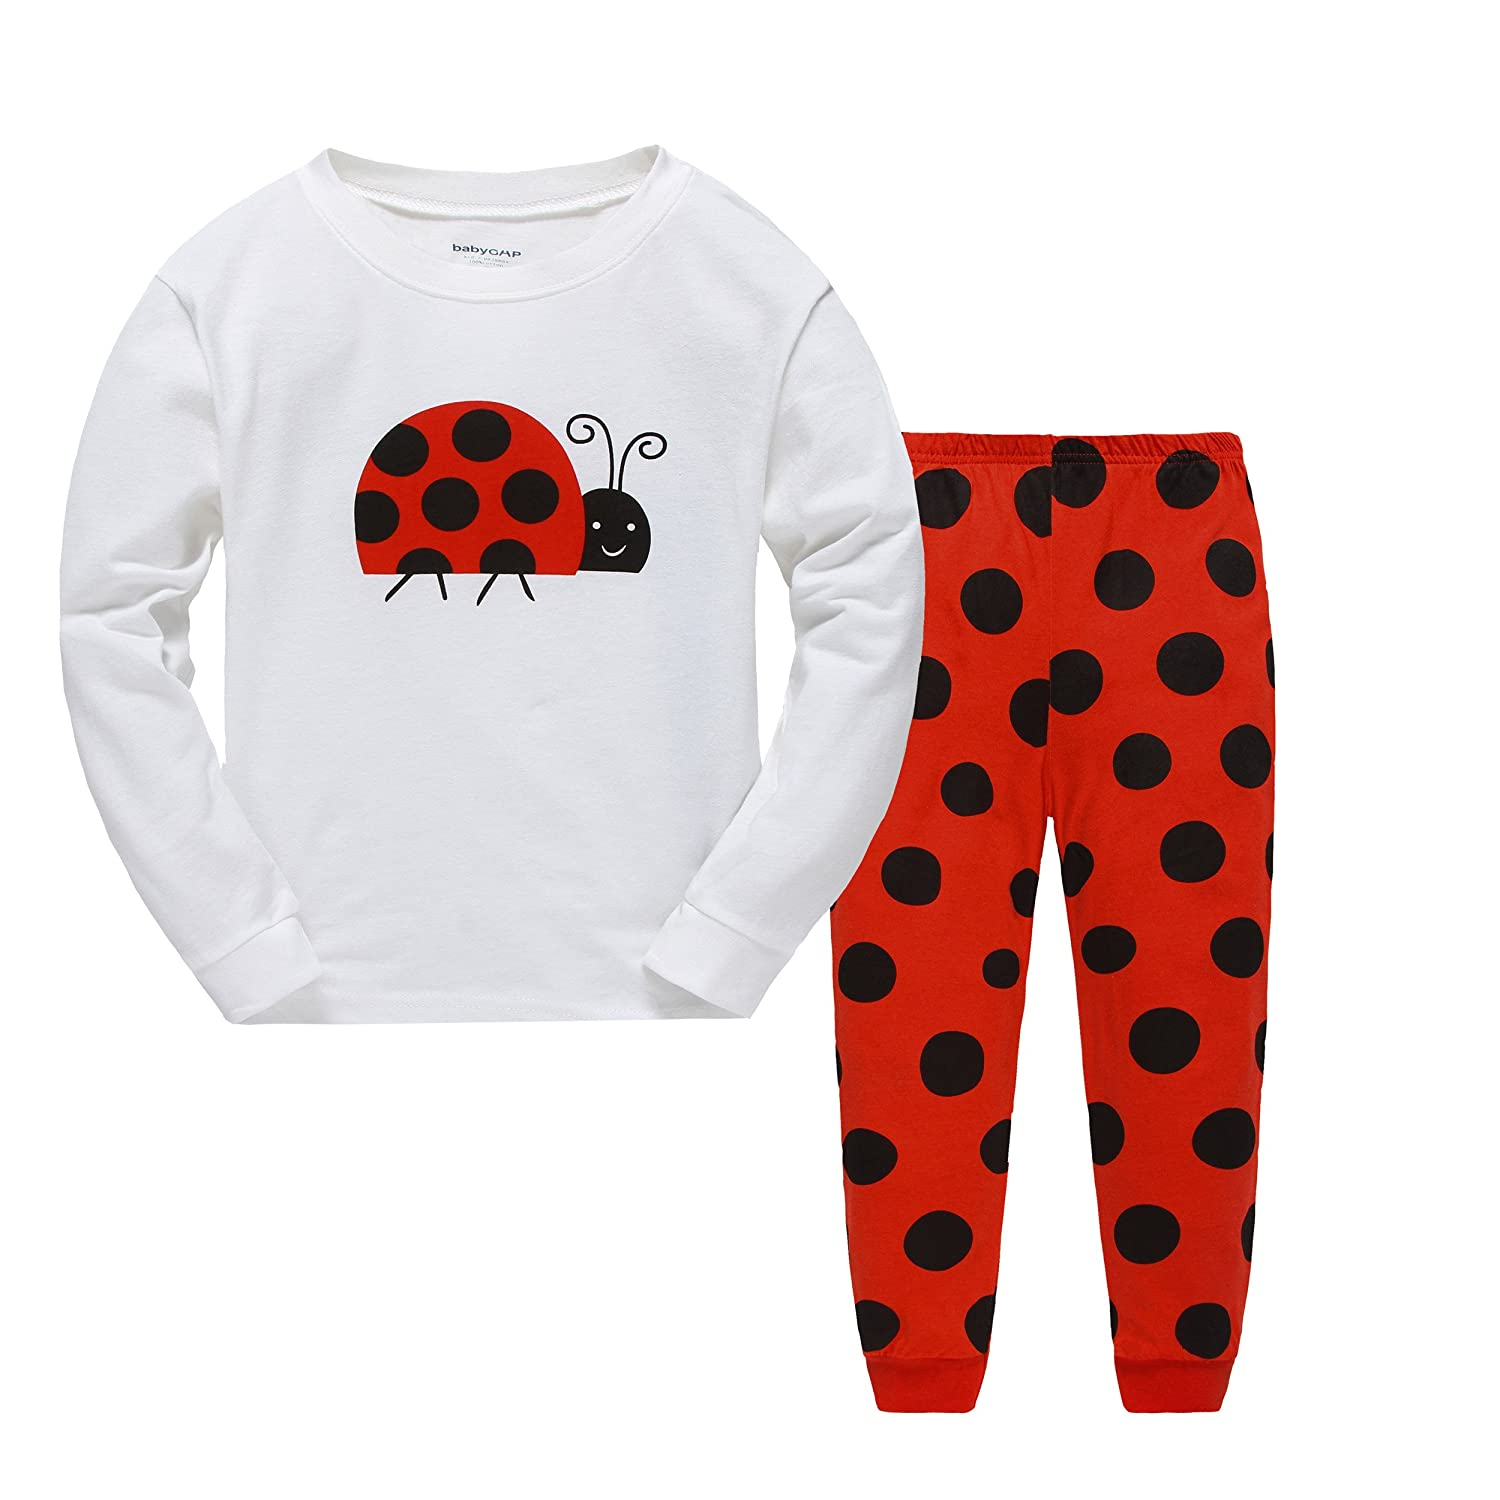 Girls Pajamas Sets Ladybug Kids Pjs Cotton Long Sleeve Sleepwears 2-7 years Cczmfeas